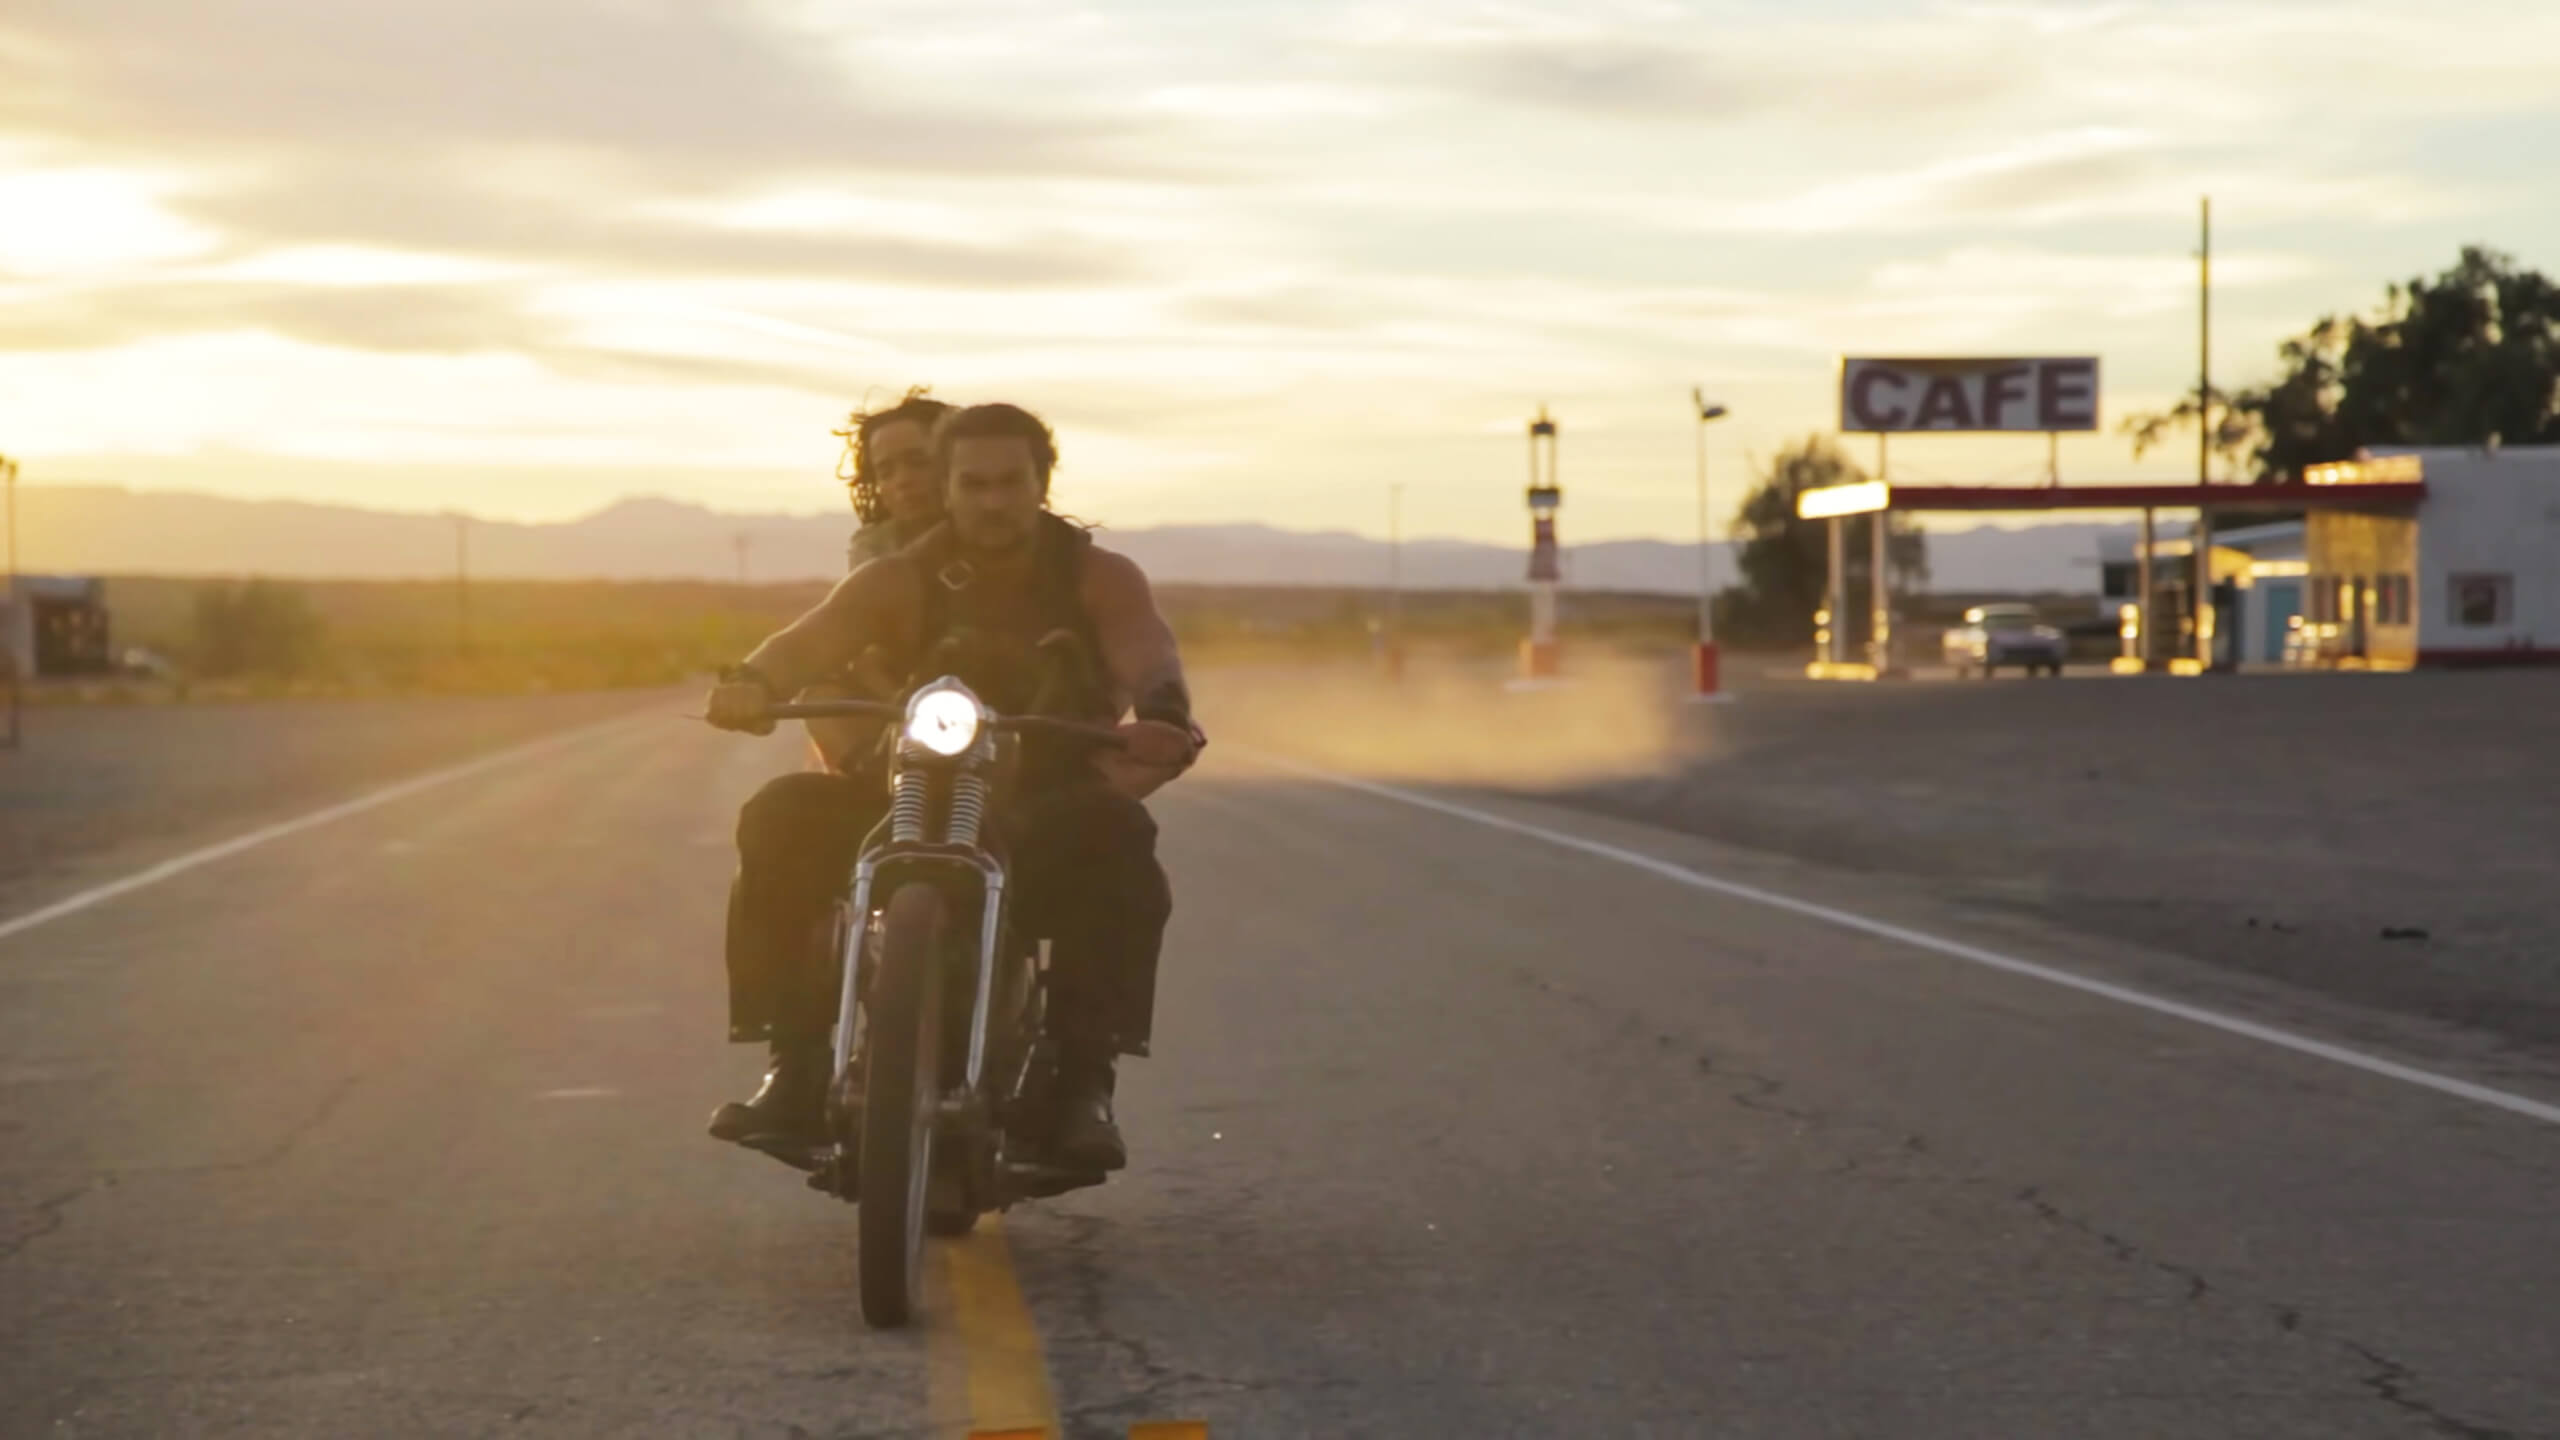 The partnership between Jason Momoa, Harley-Davidson, and creative agency TMA produced a Father's Day video that aired on Good Morning America, Access Hollywood, and People Magazine.